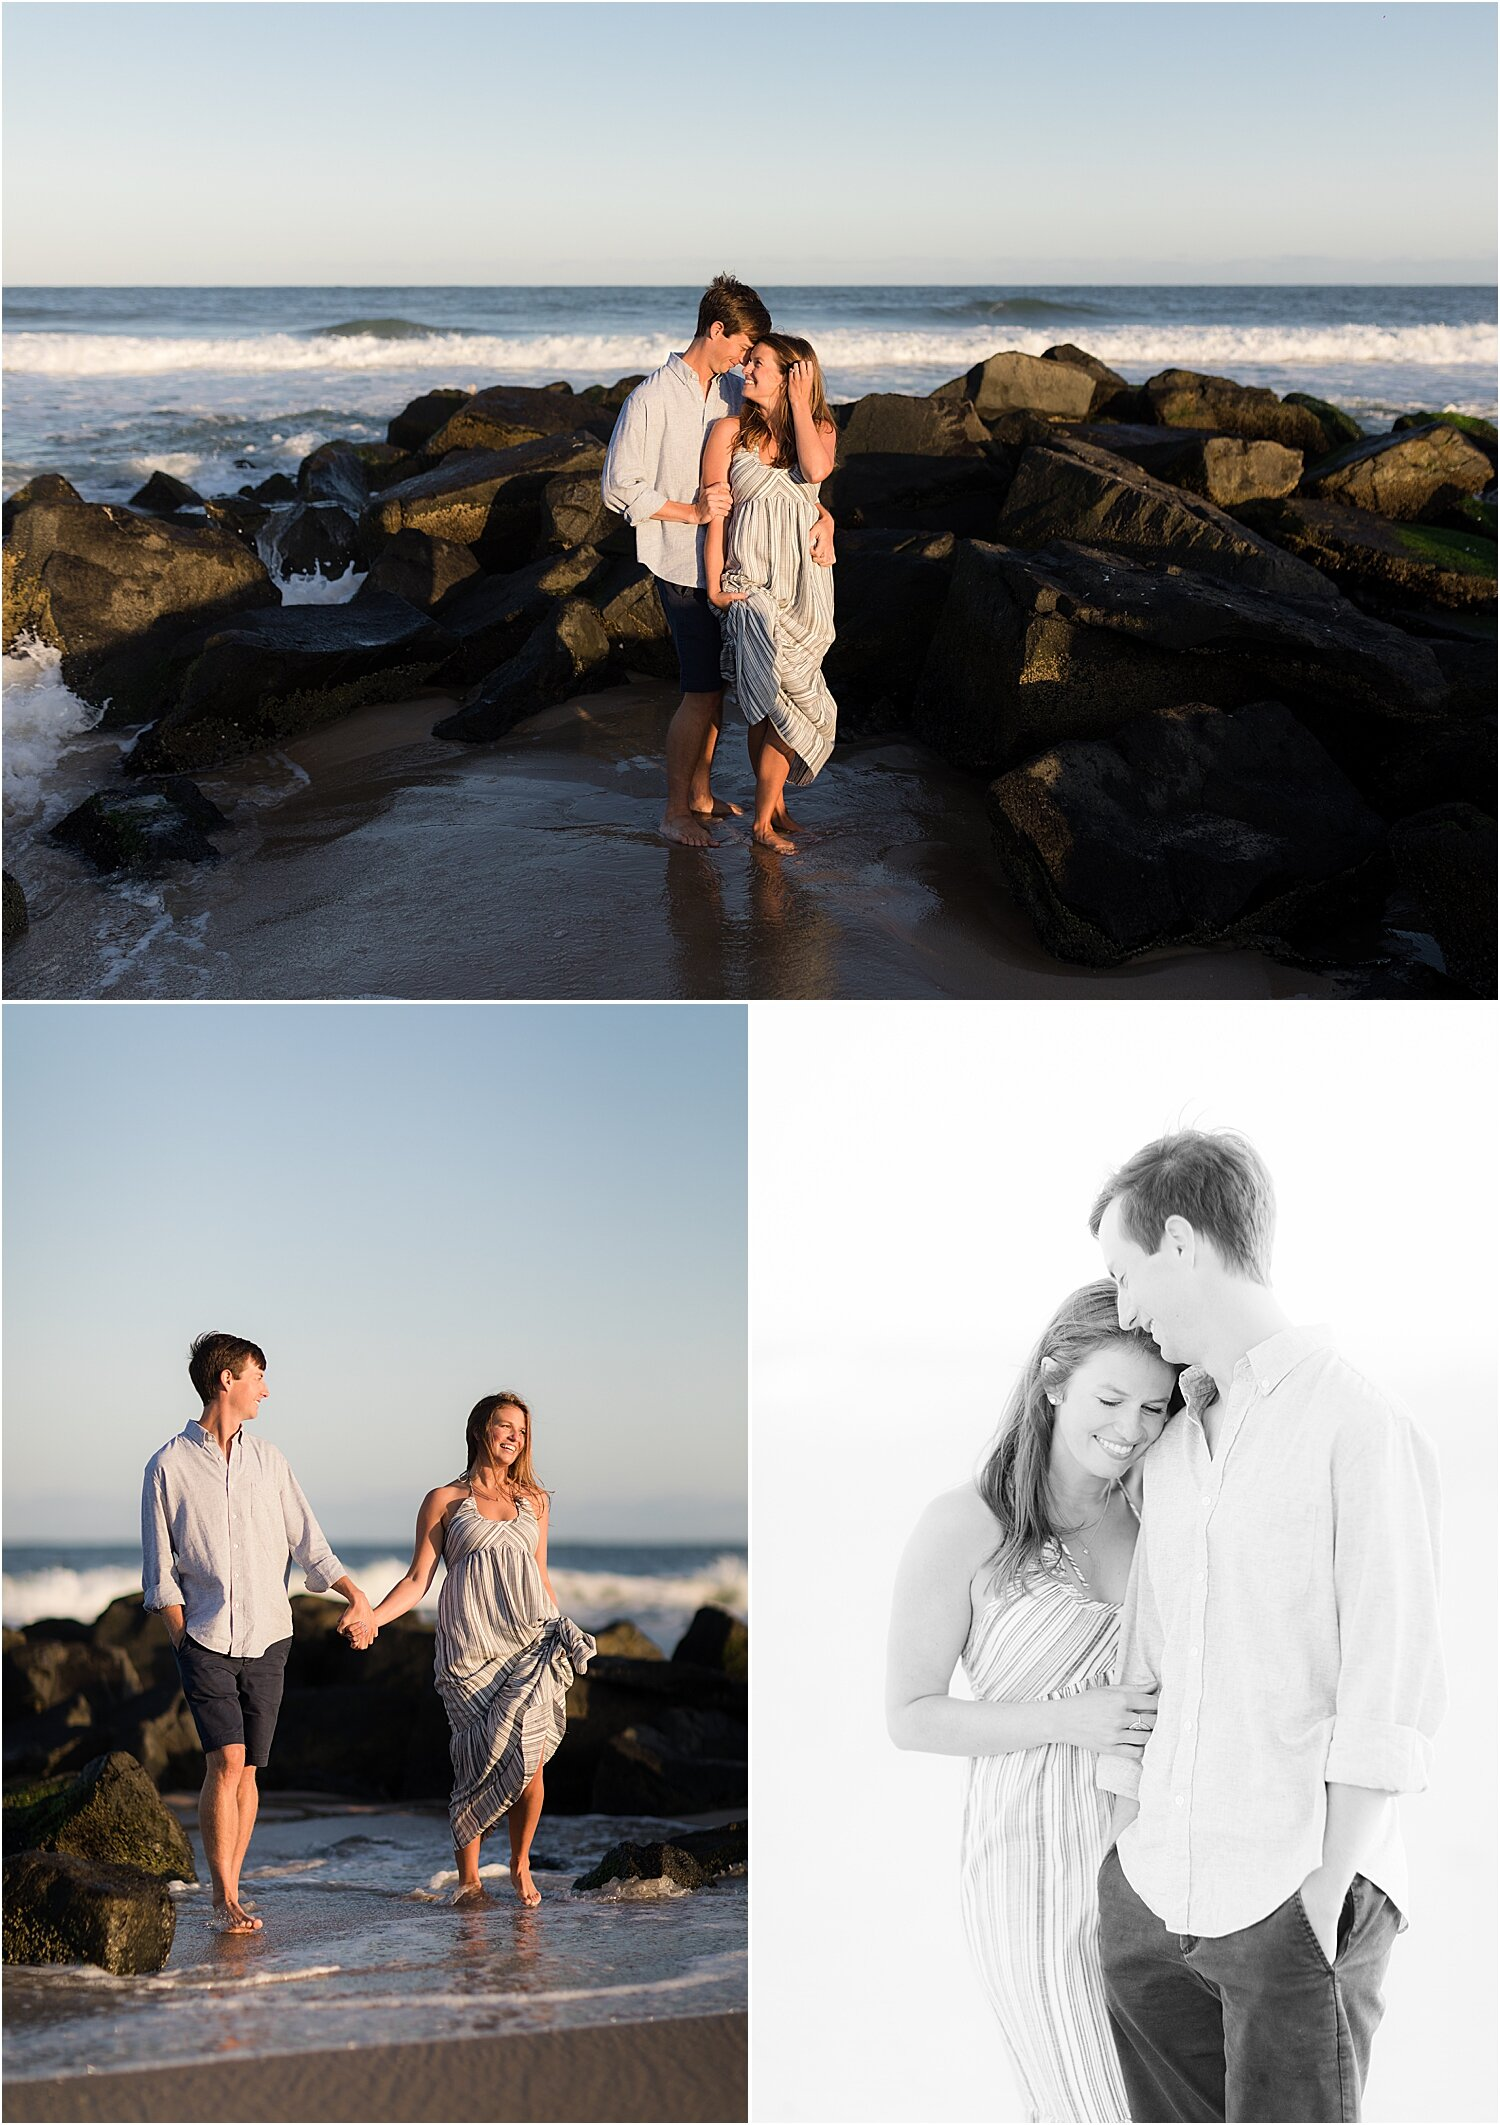 LBI engagement photos near jetty